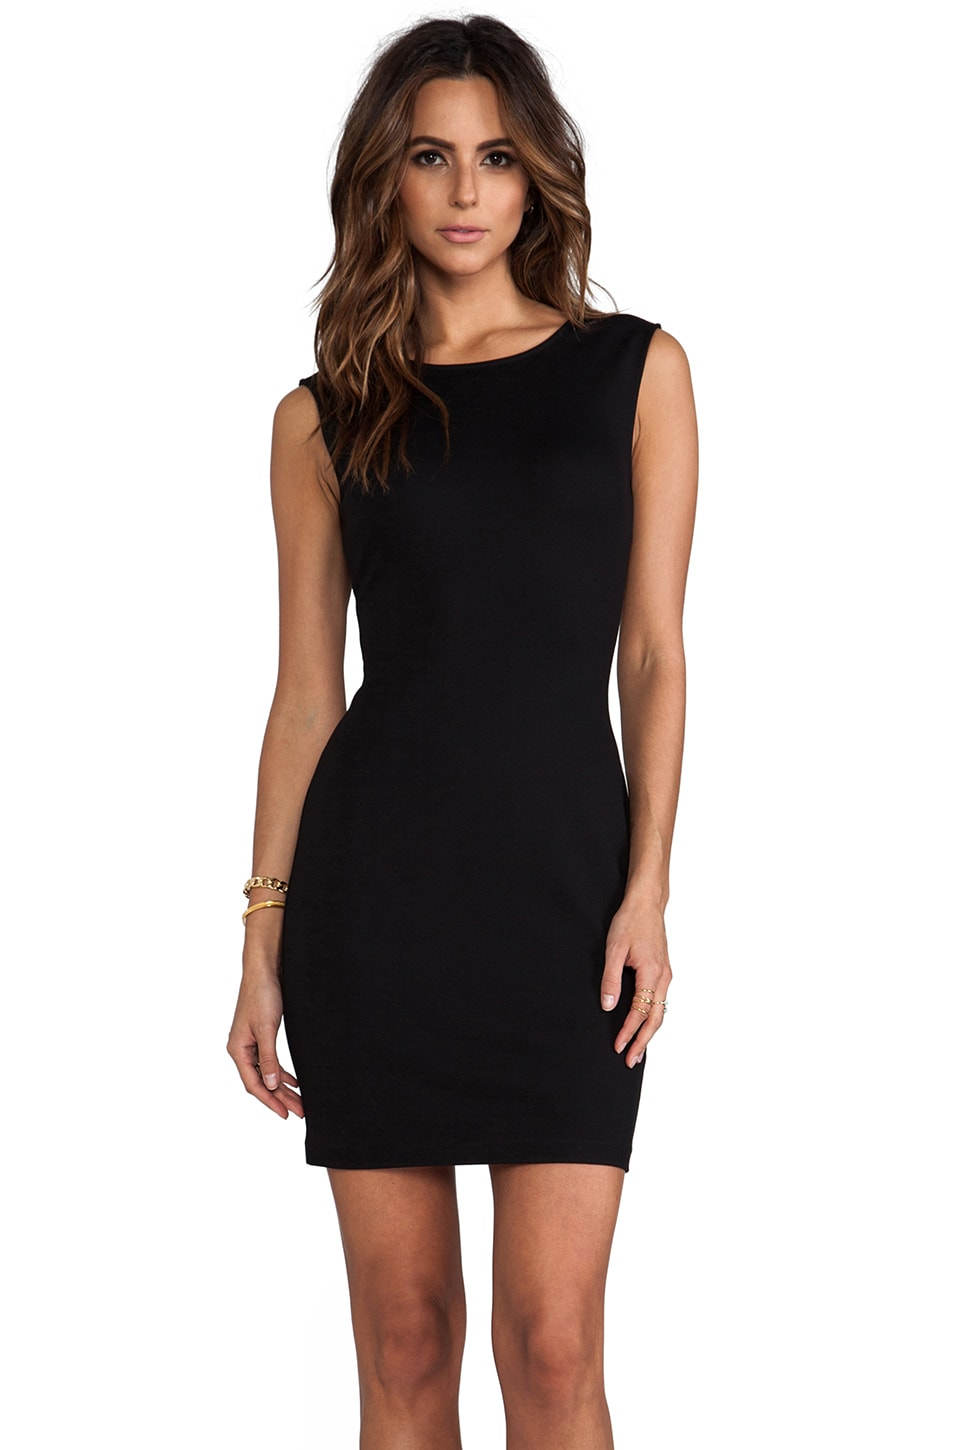 Juicy Couture Solid Ponte Dress in Pitch Black